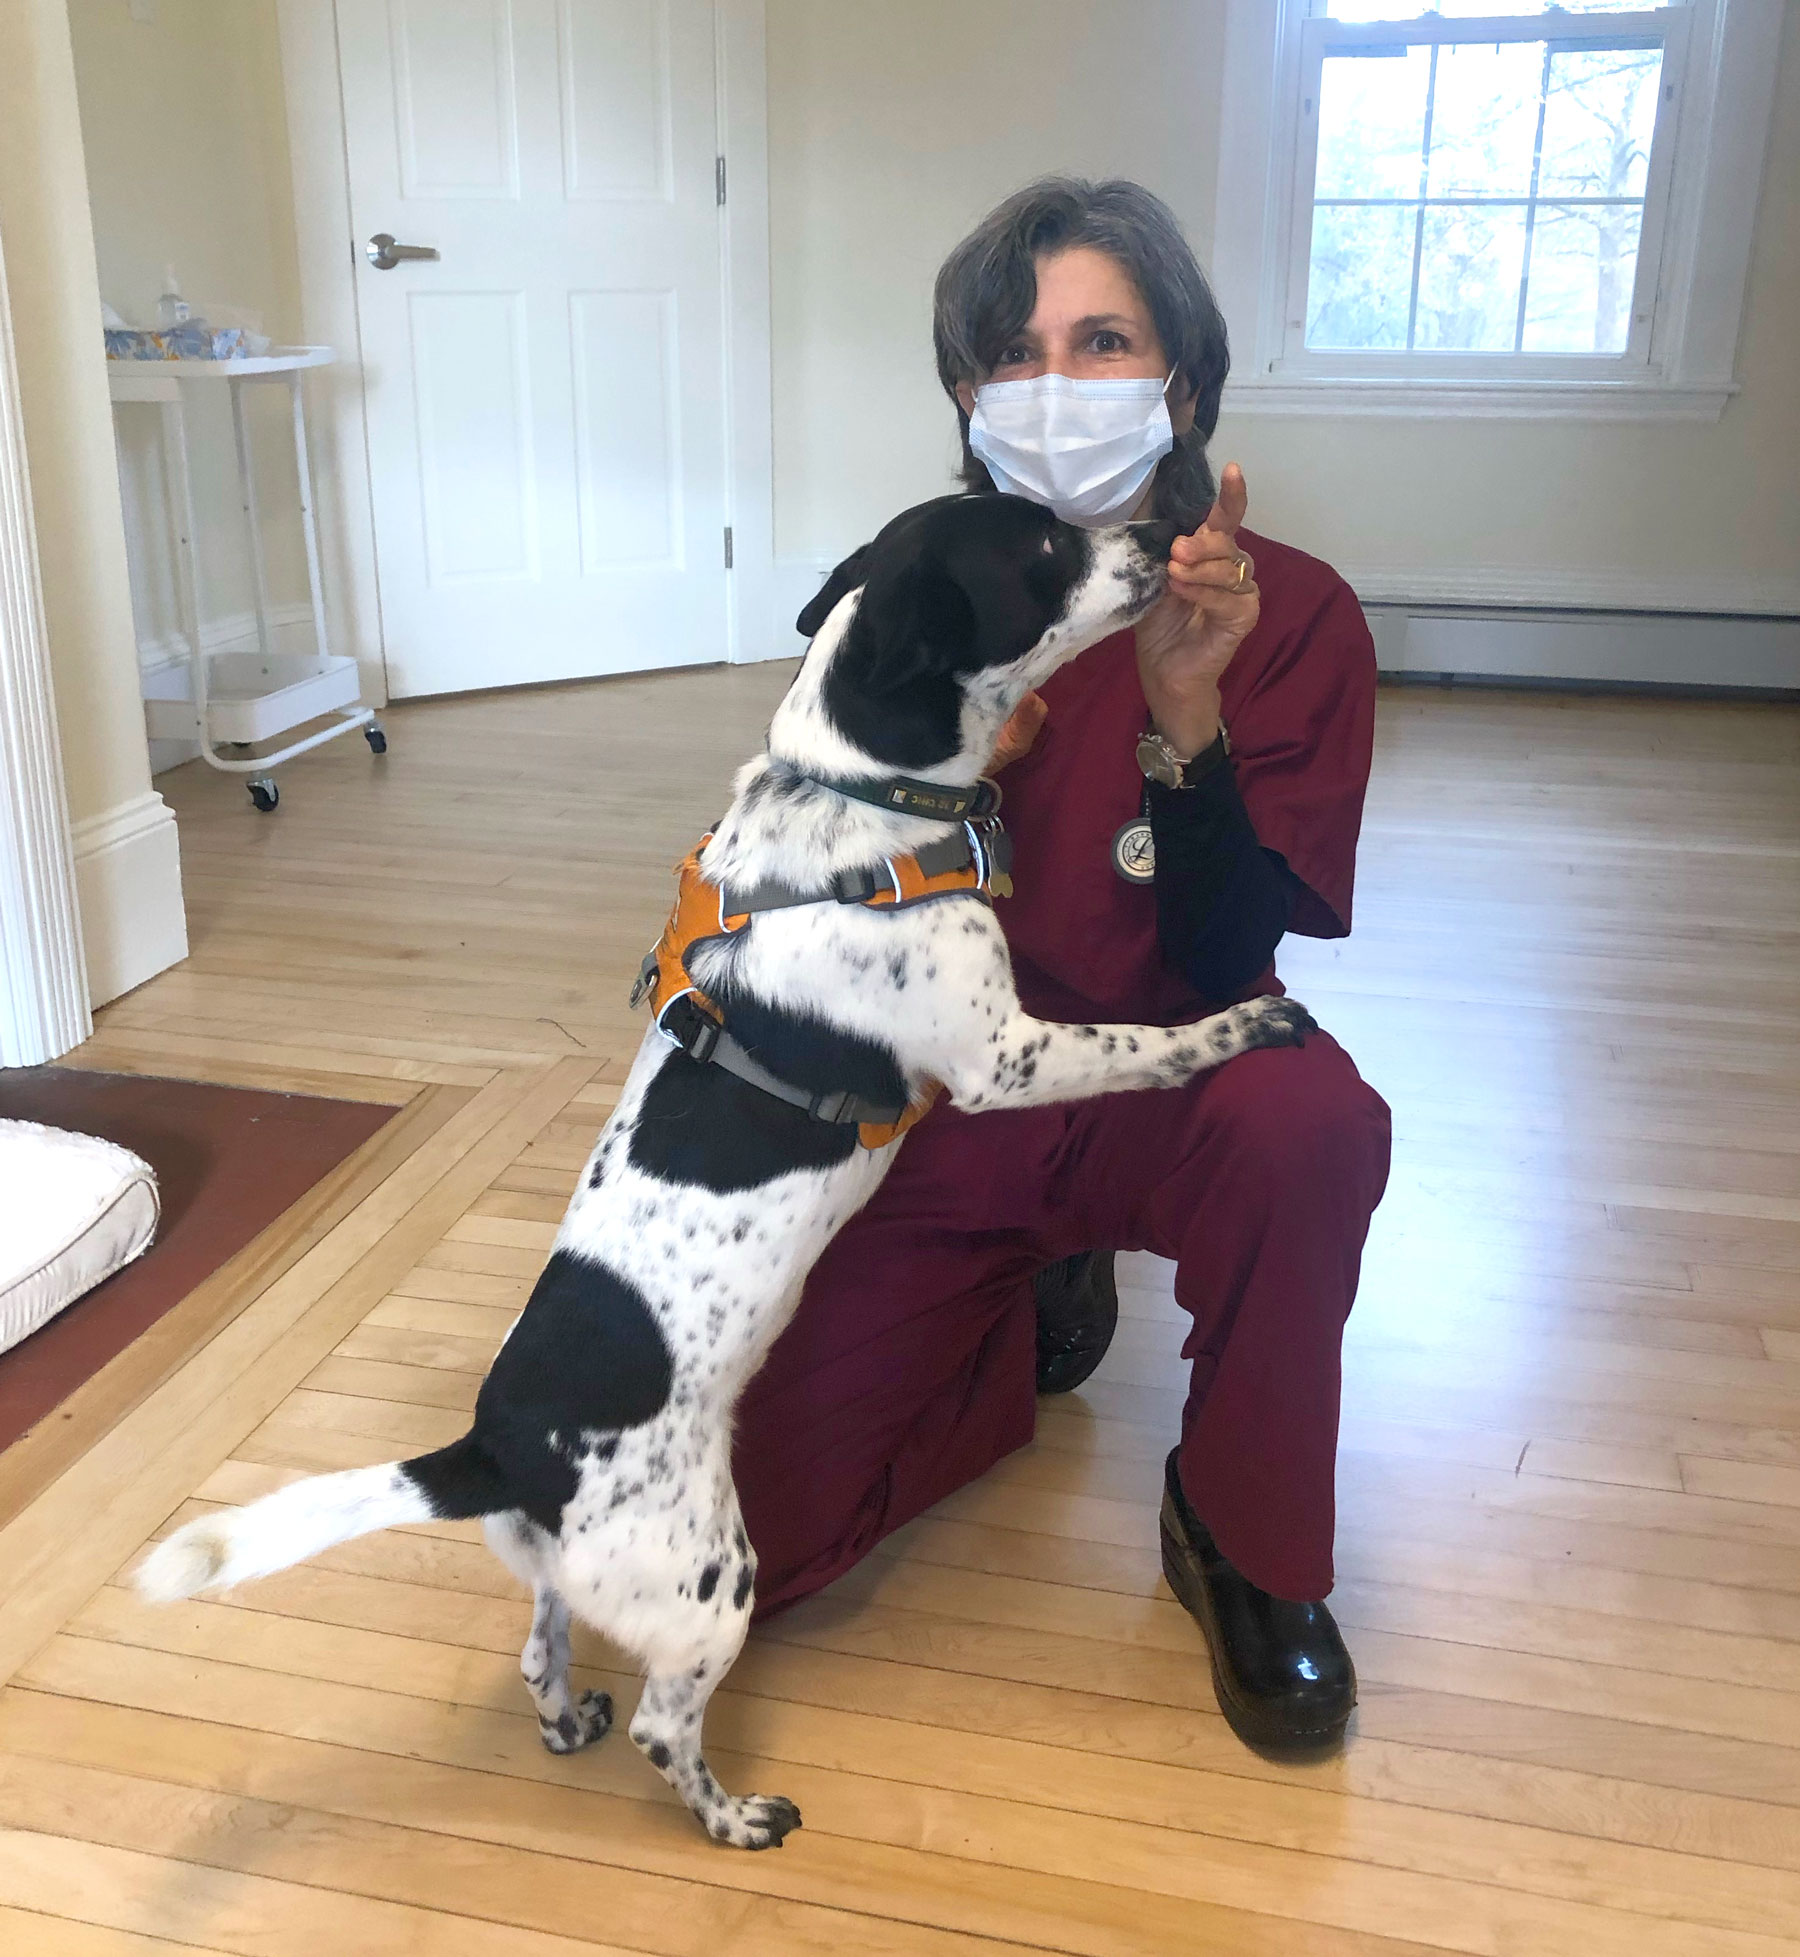 Dr. Borns-Weil and Henry